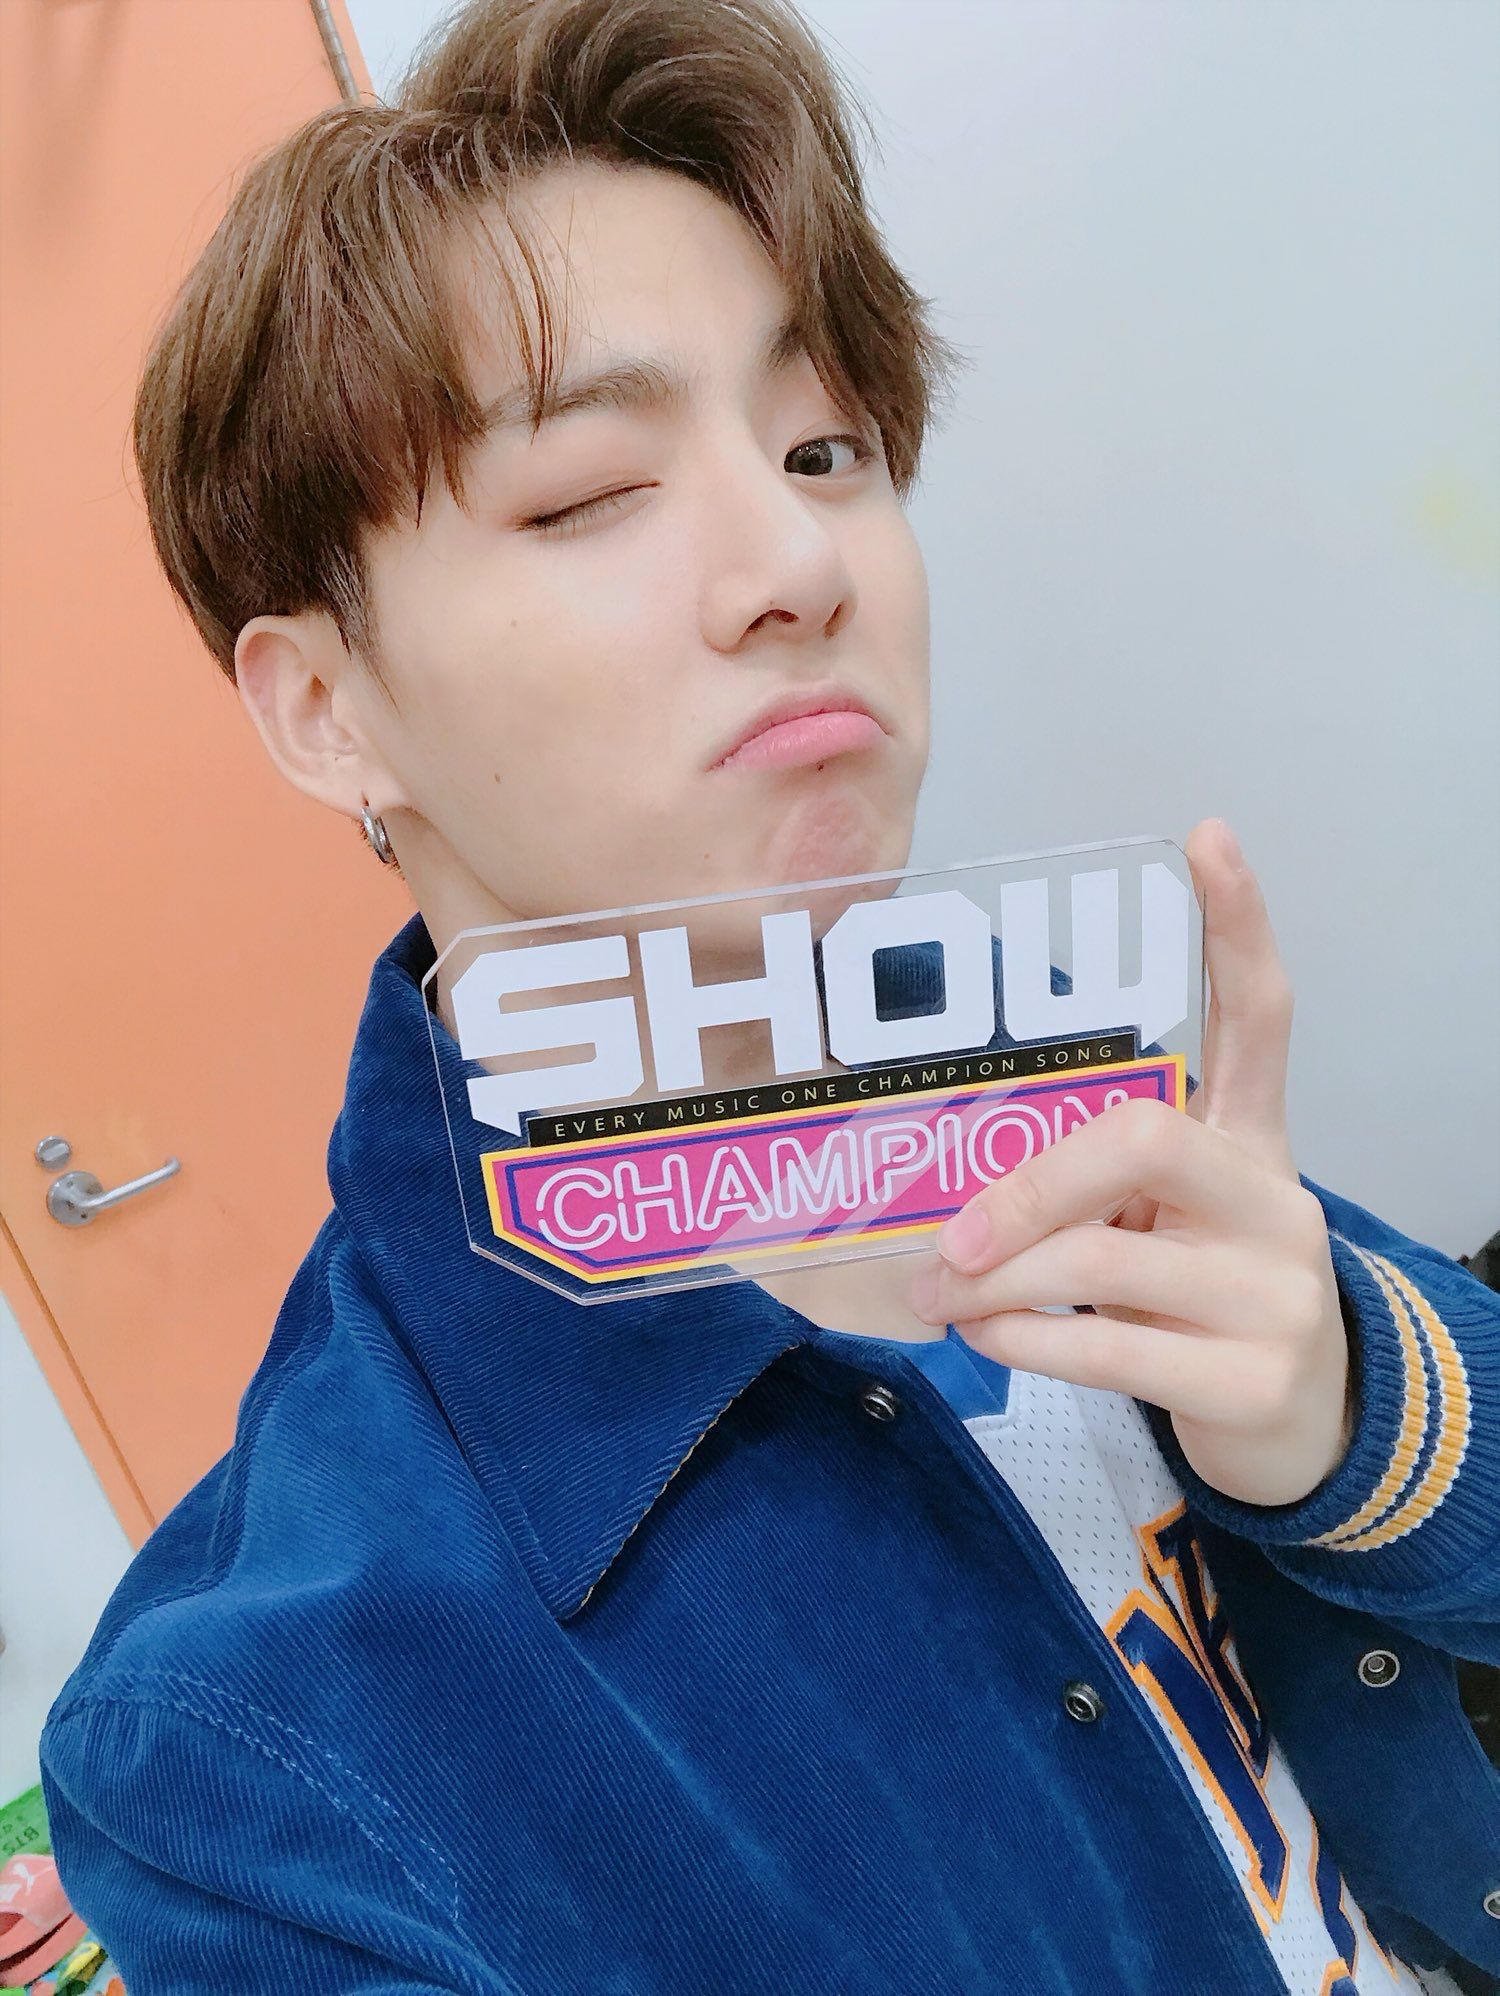 JUNGKOOK on Show Champion's Official Twitter account (@showchampion1